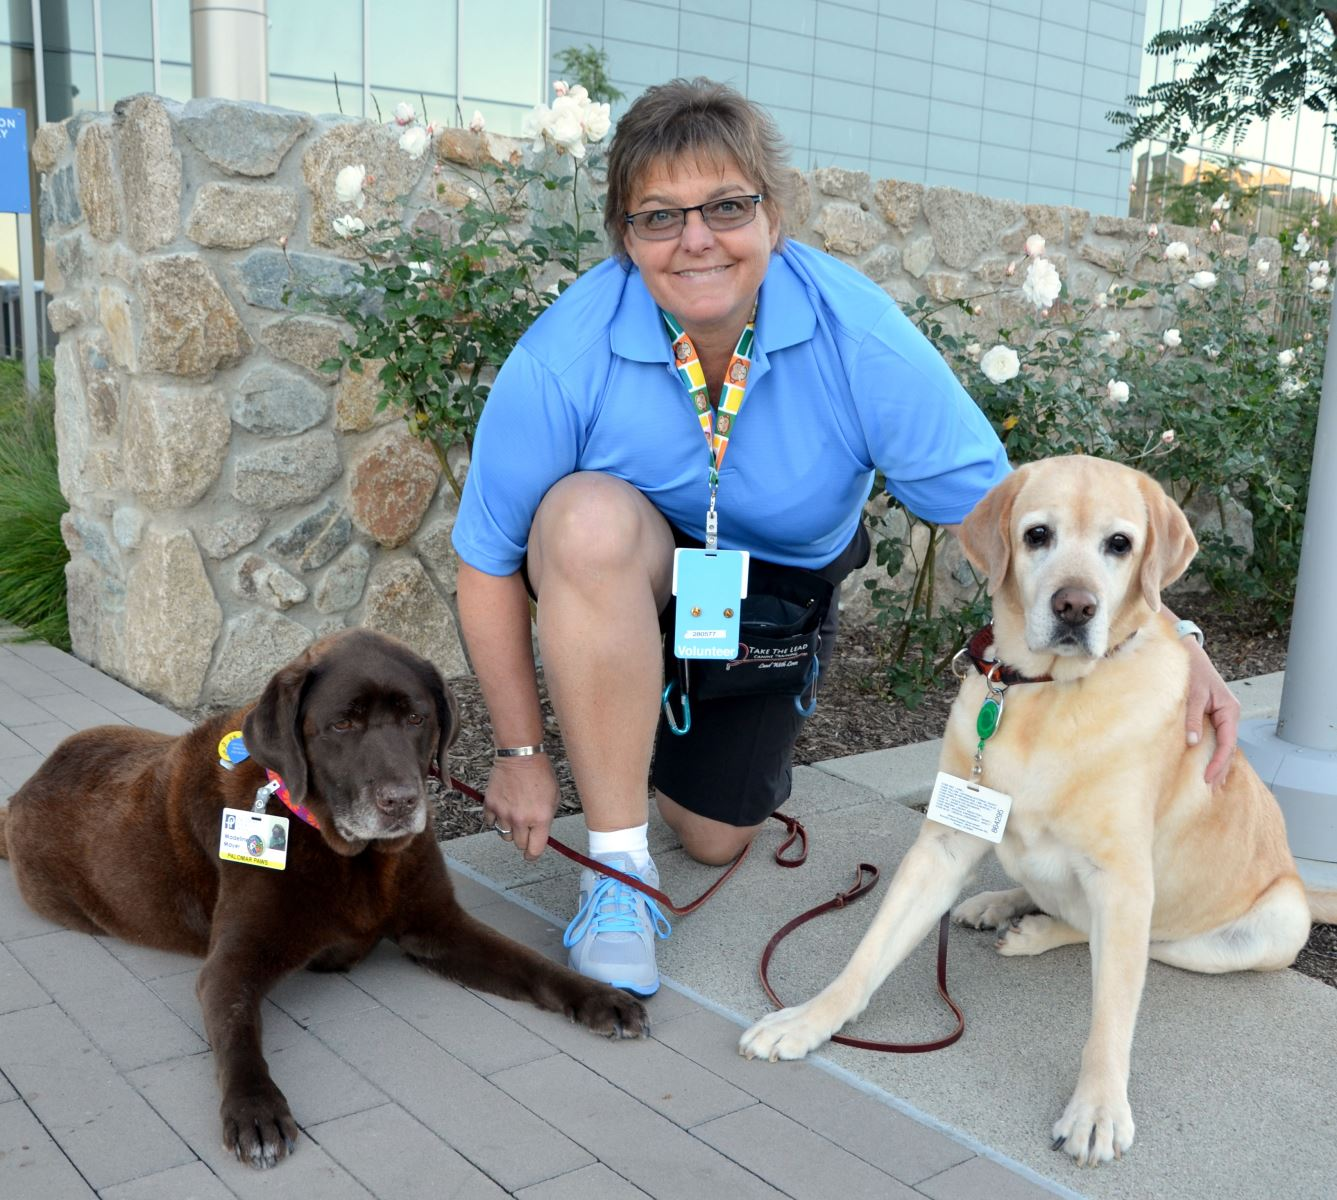 volunteer stories palomar health san diego county ca there are currently 30 dogs volunteering palomar paws program cathy er a professional dog trainer and volunteer coordinator for the program